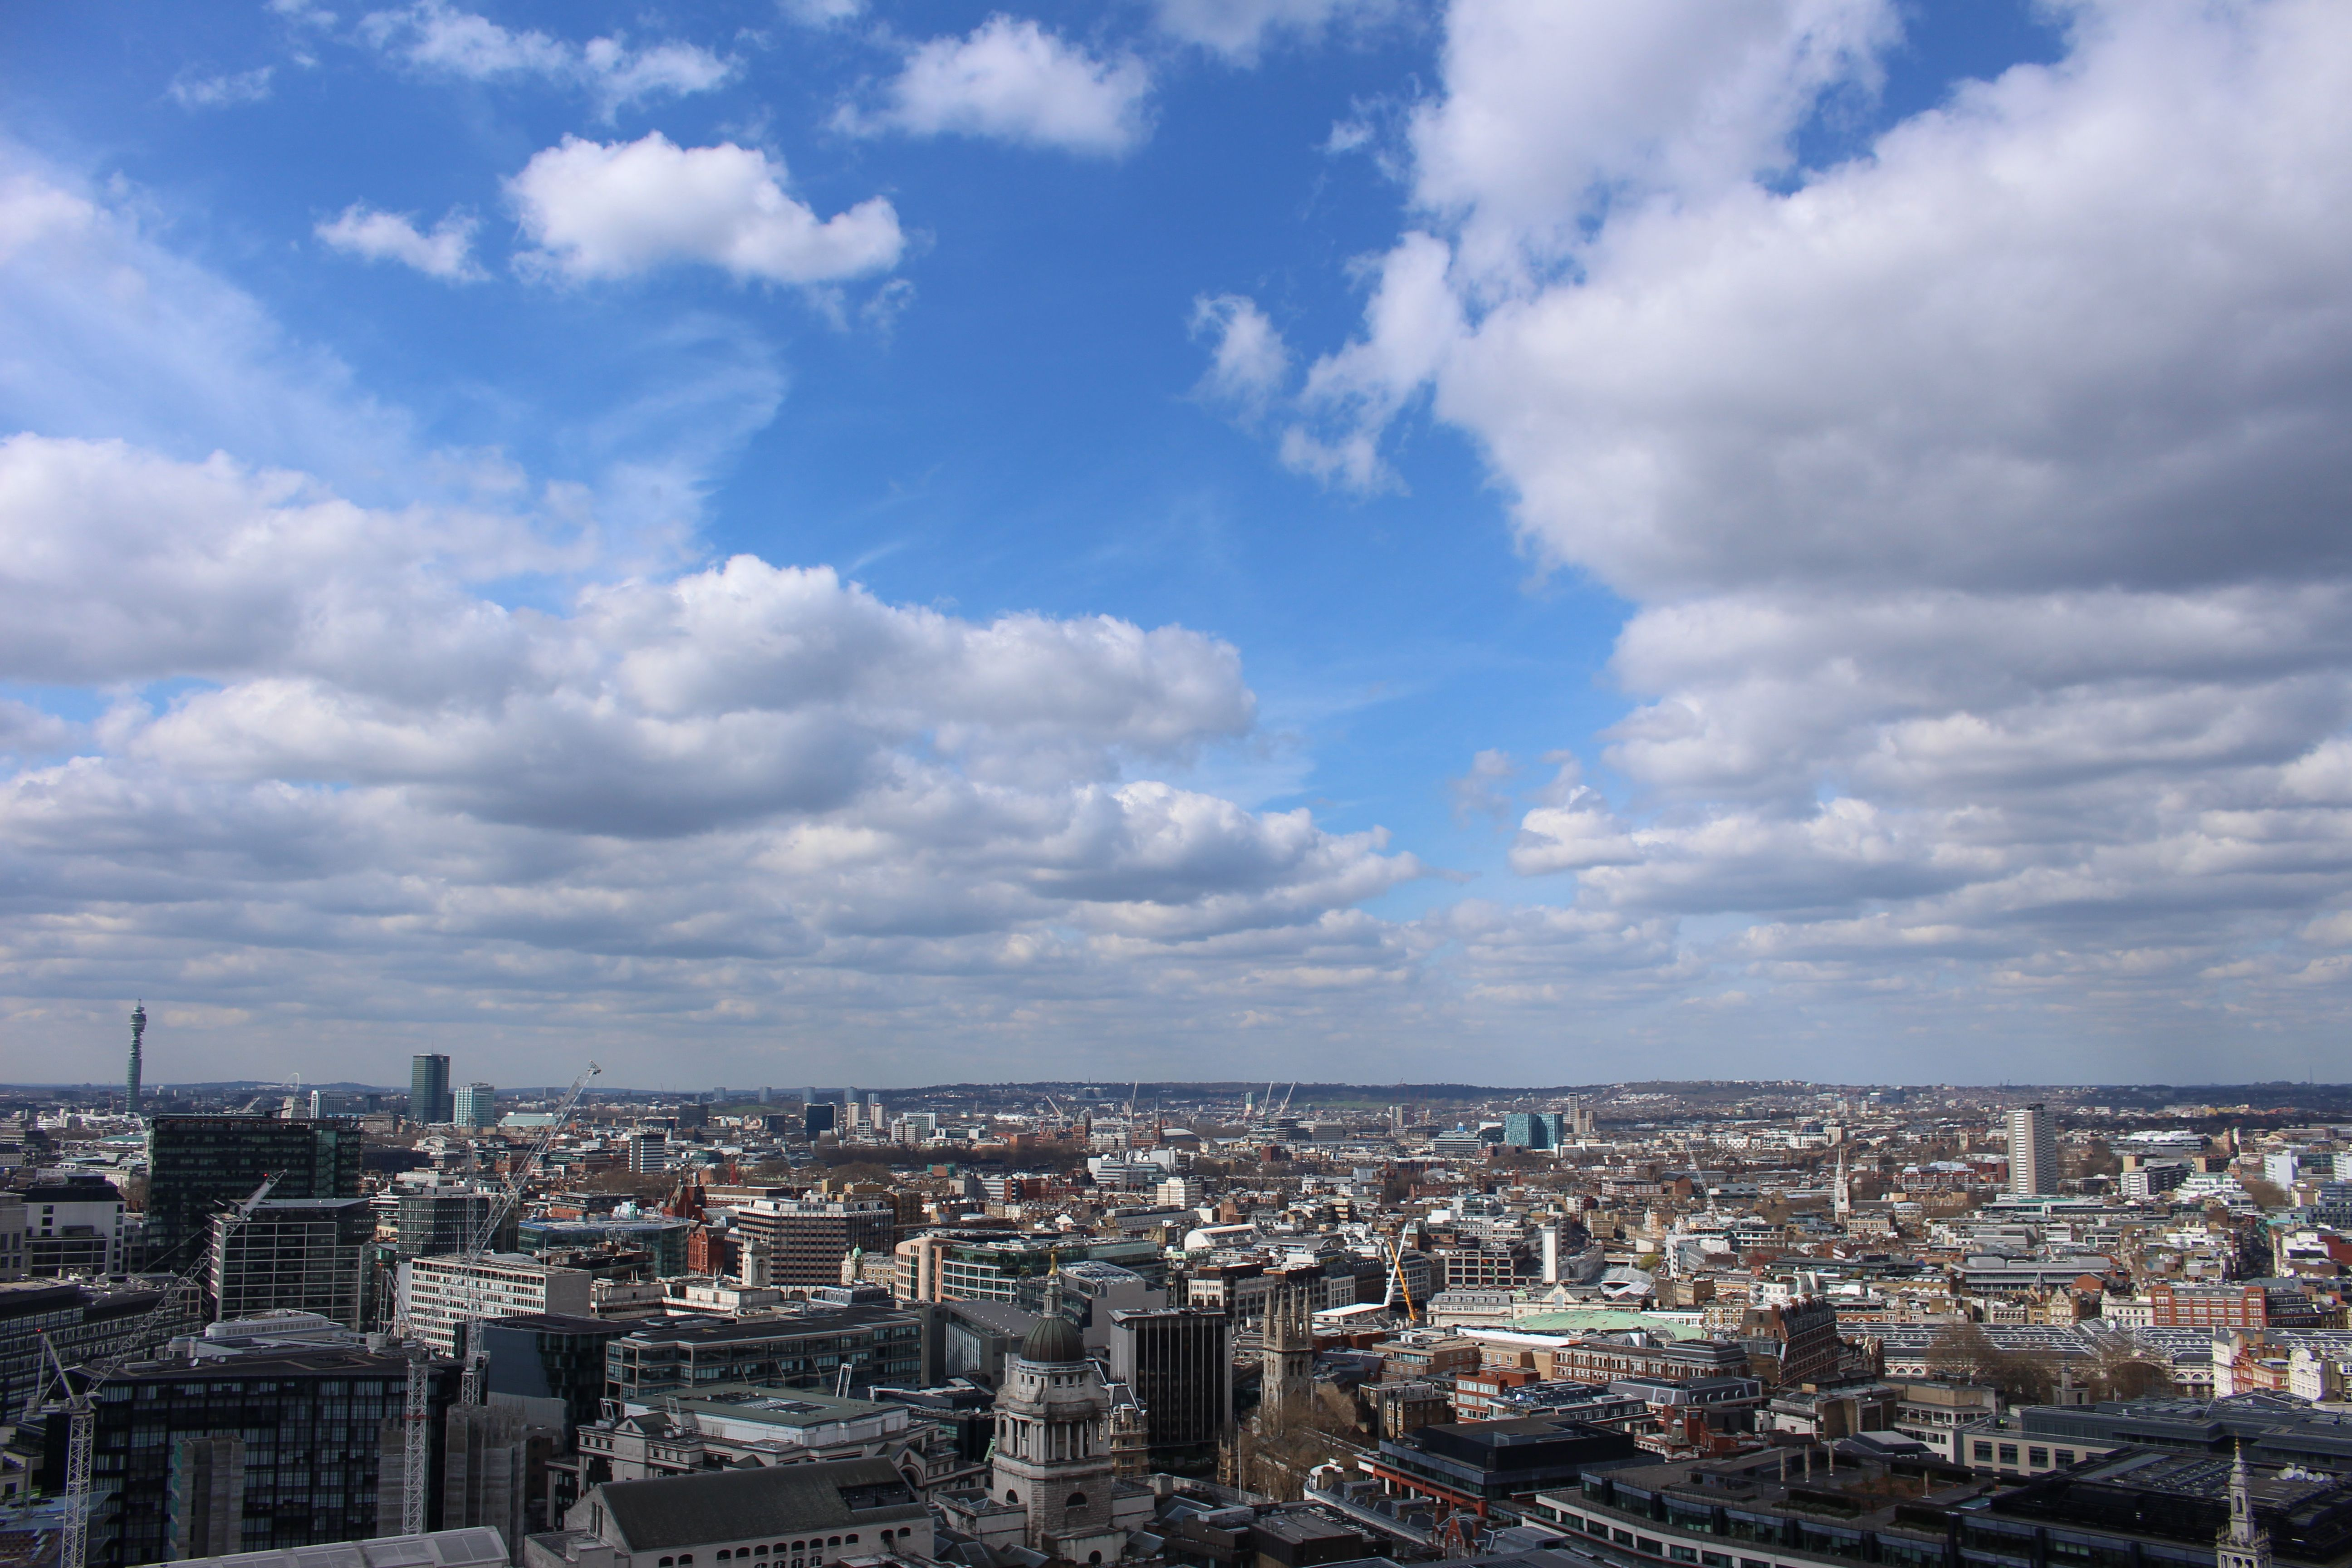 From the top of St Paul's Cathedral